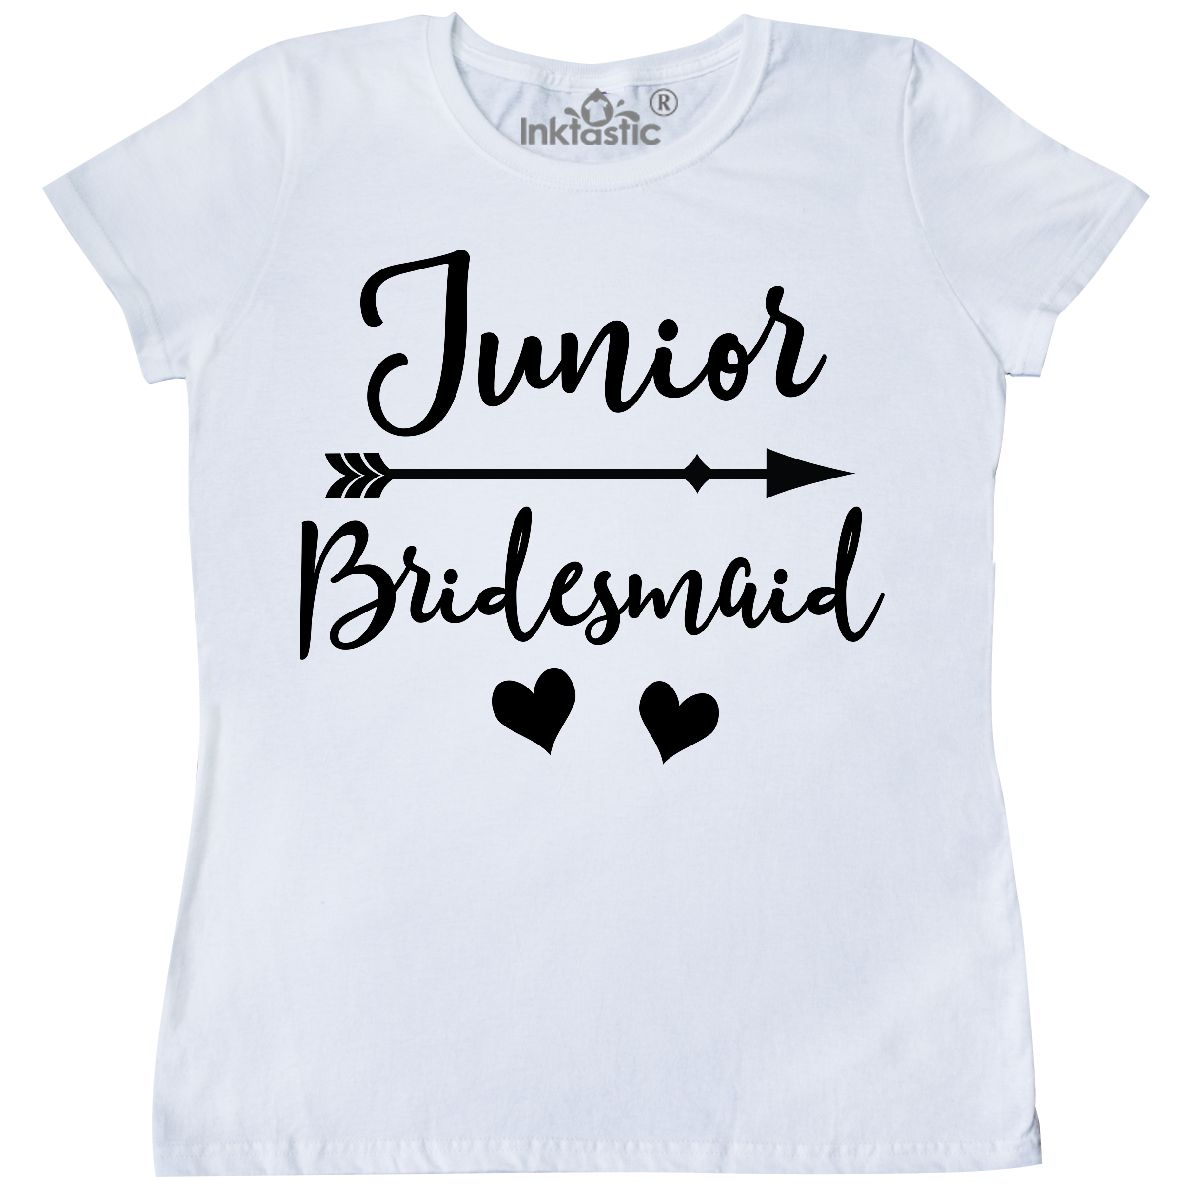 8ade5dc429abe Details about Inktastic Junior Bridesmaid Wedding Bridal Party Gift Women's  T-Shirt Cute Photo